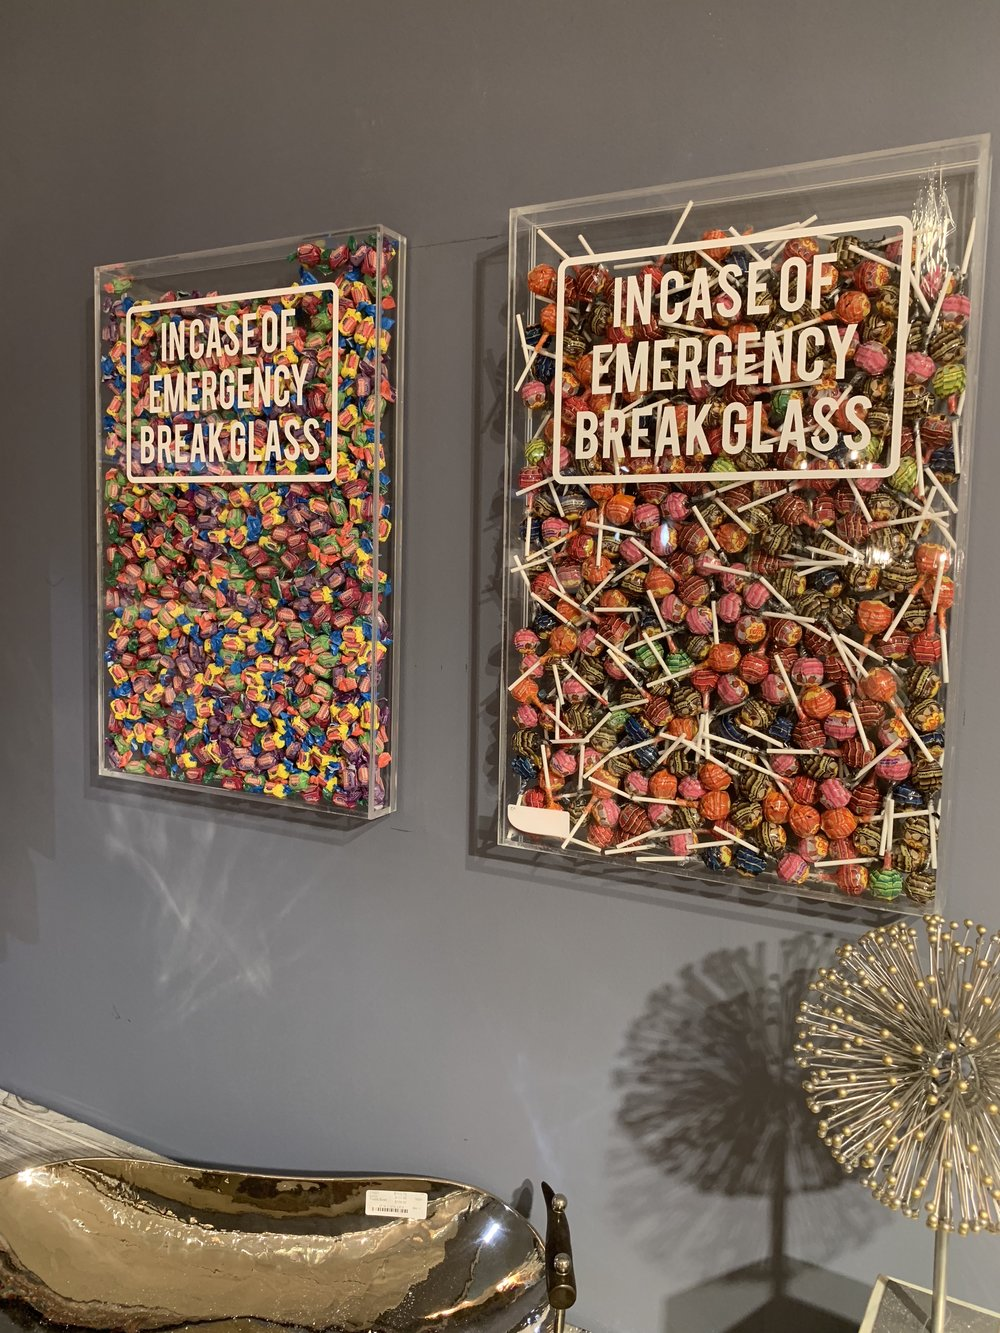 If those were dark chocolate peanut M & M's, it would definitely be an emergency.